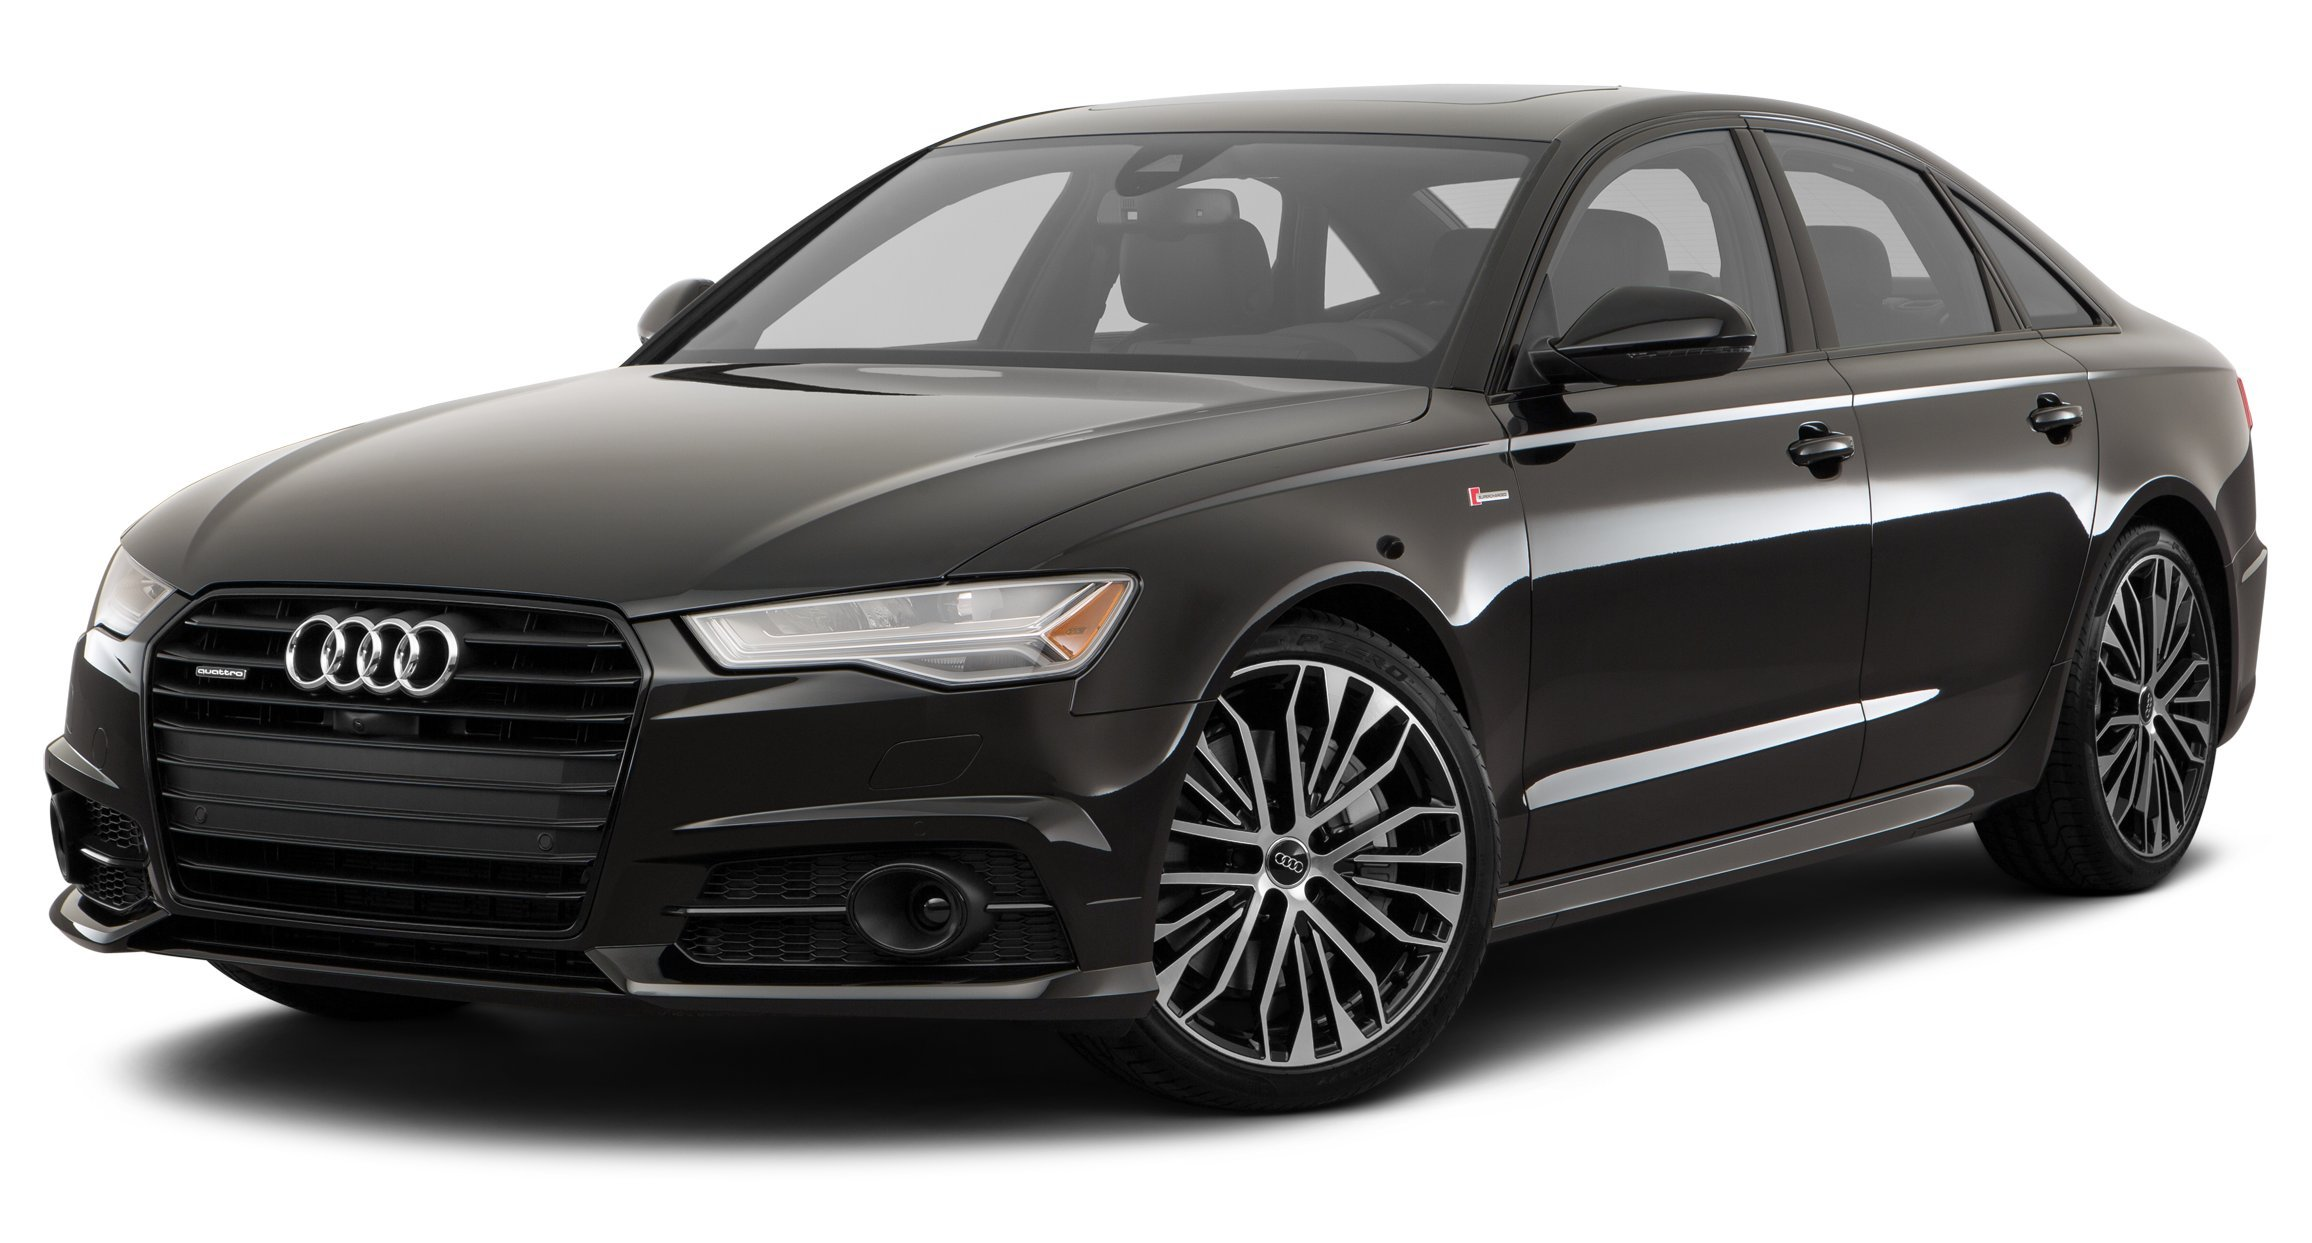 2017 audi a6 quattro reviews images and specs vehicles. Black Bedroom Furniture Sets. Home Design Ideas